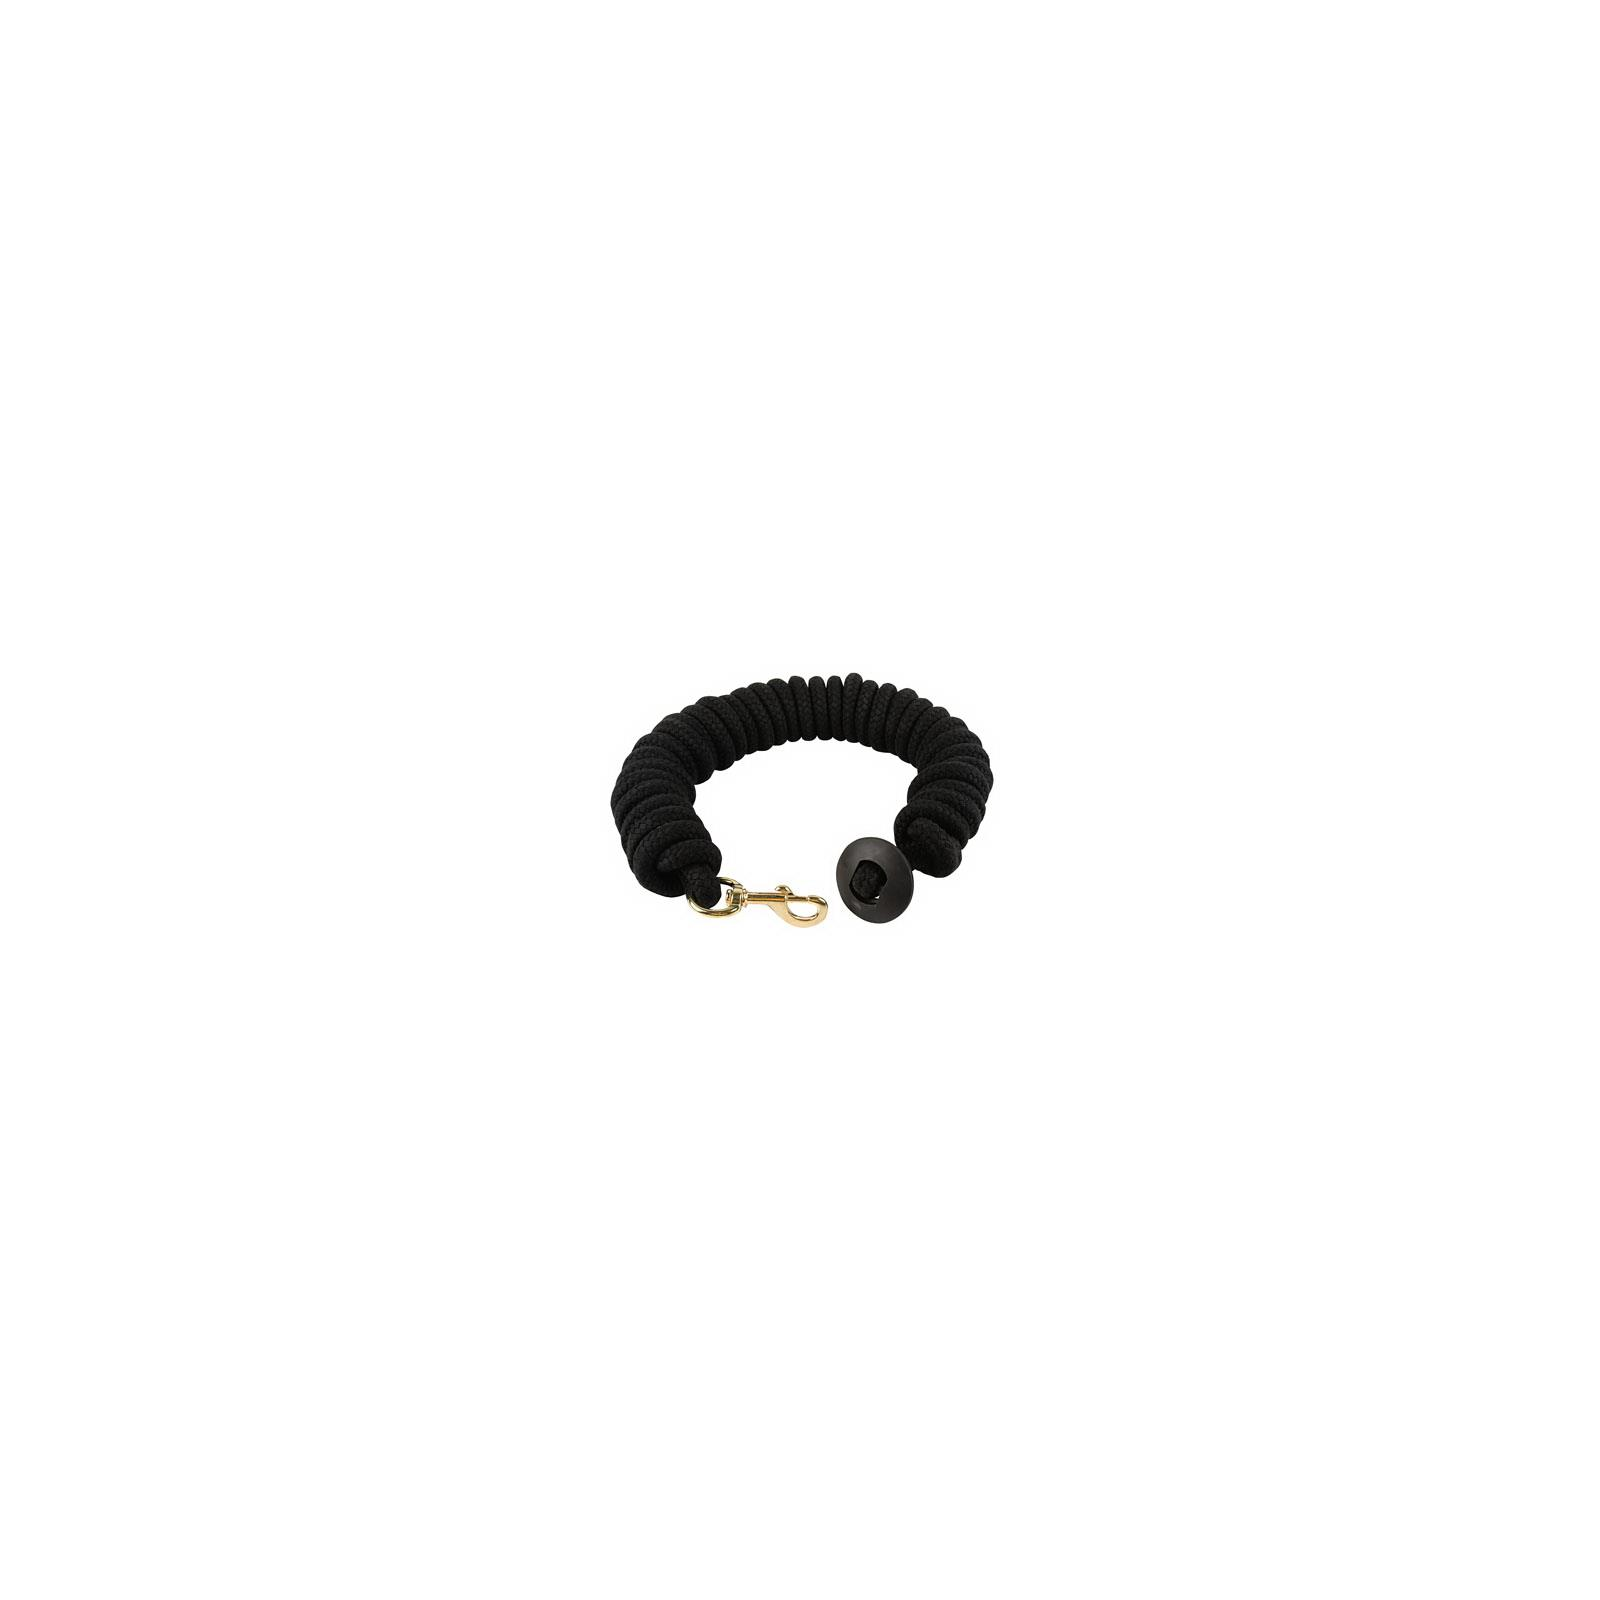 Weaver-Leather-35-1915-BK-Horse-Lunge-Line-Black-Rounded-Cotton-3-4-034-x25-039-Qty1 thumbnail 2